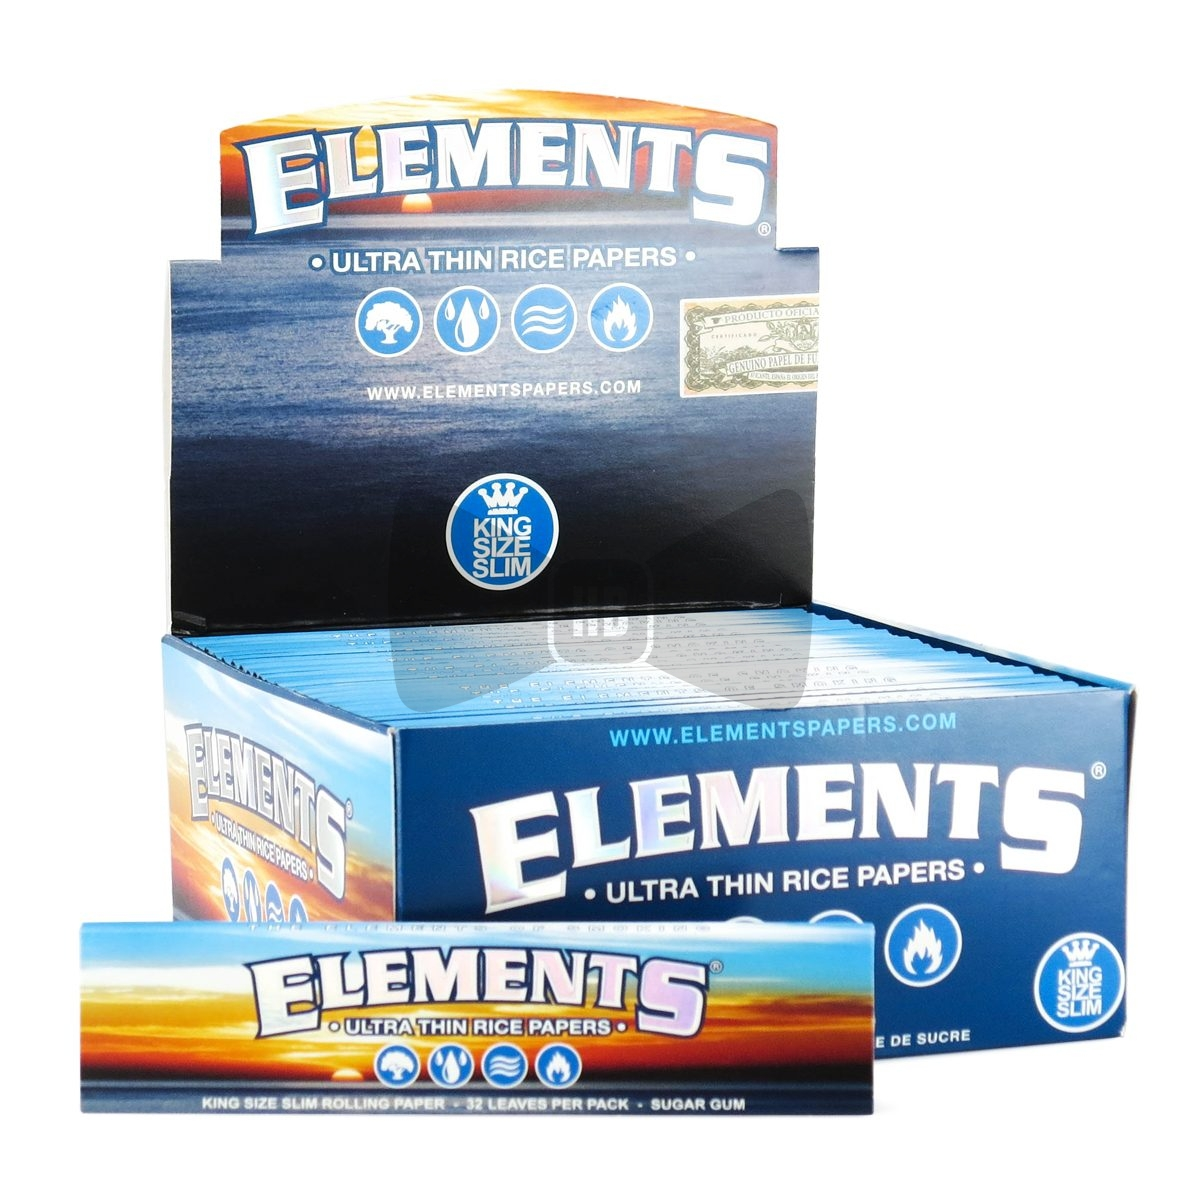 *Elements Ultra Rice 50ct. King size Slim Papers EL4